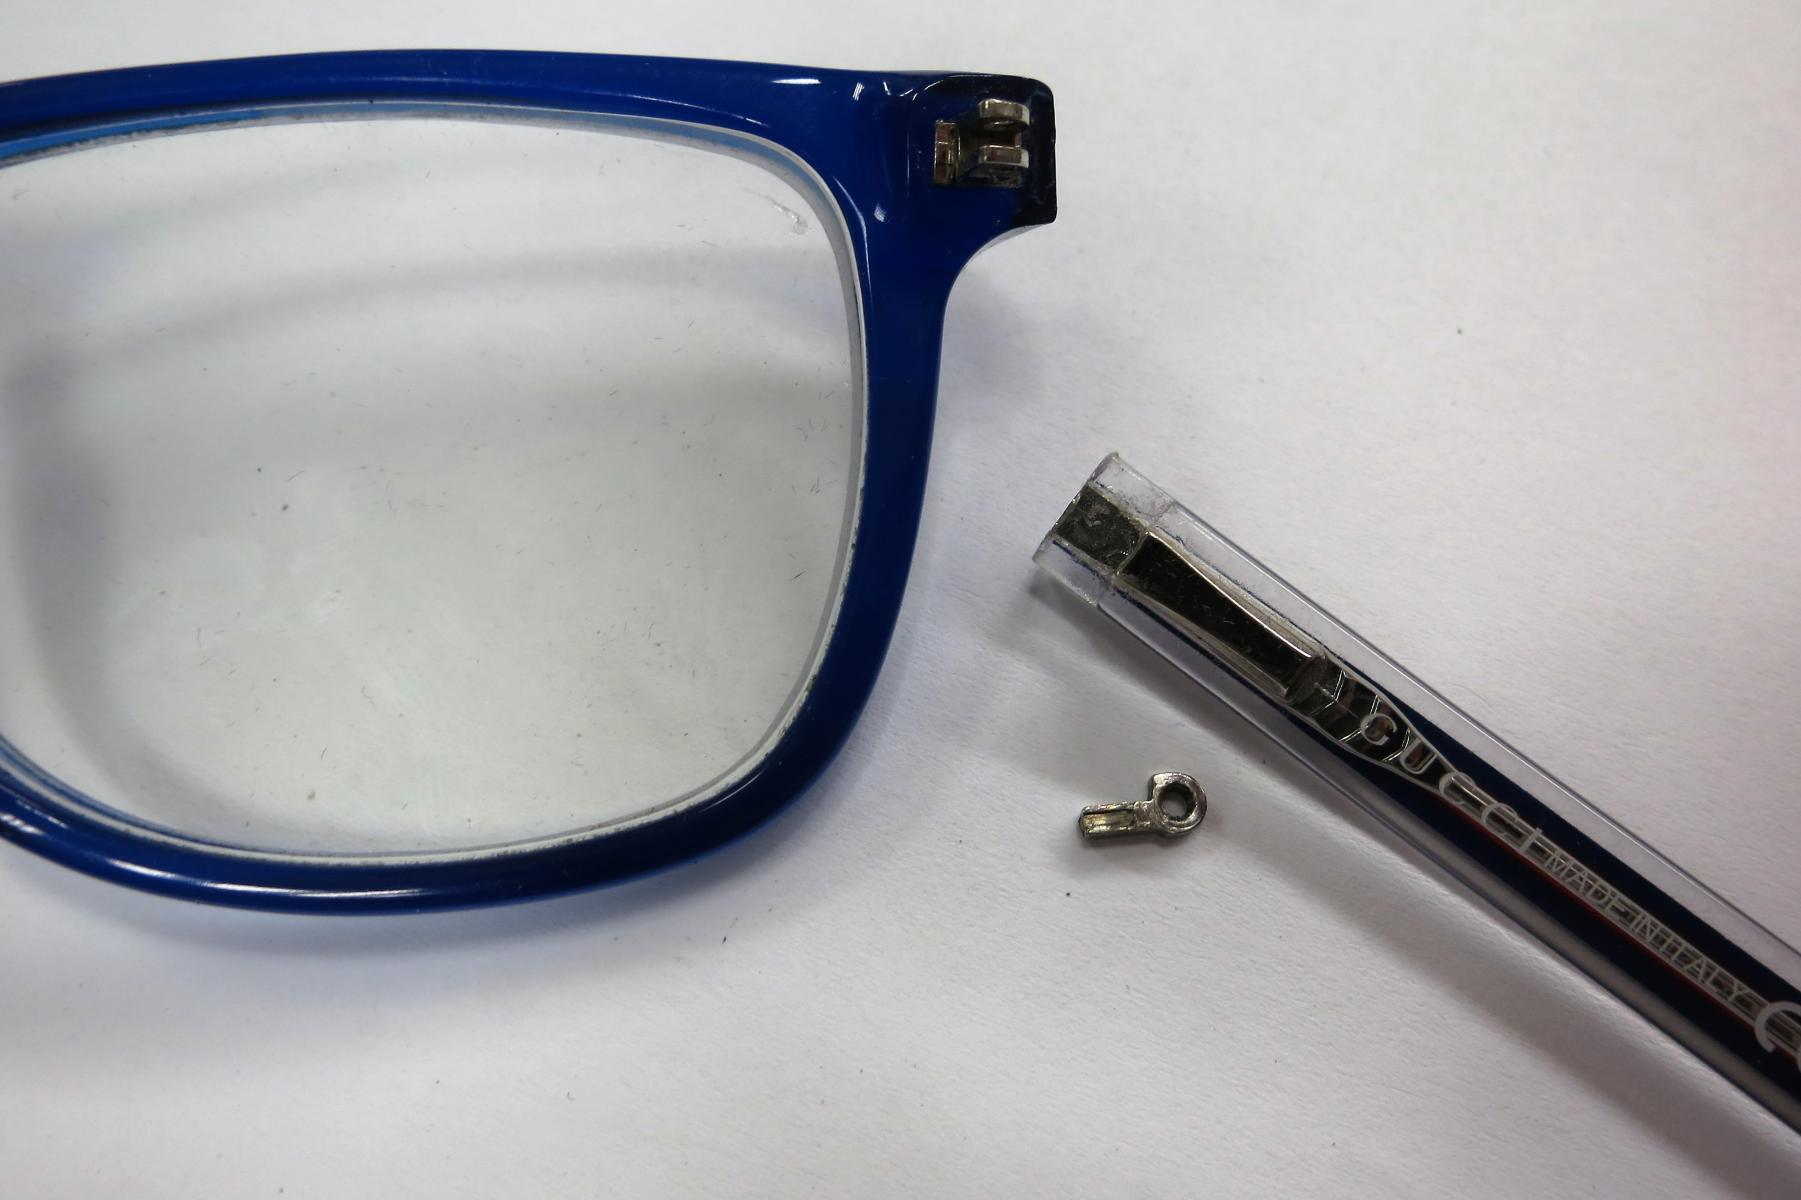 Broken eyeglasses spring hinge - The most frequent repairs